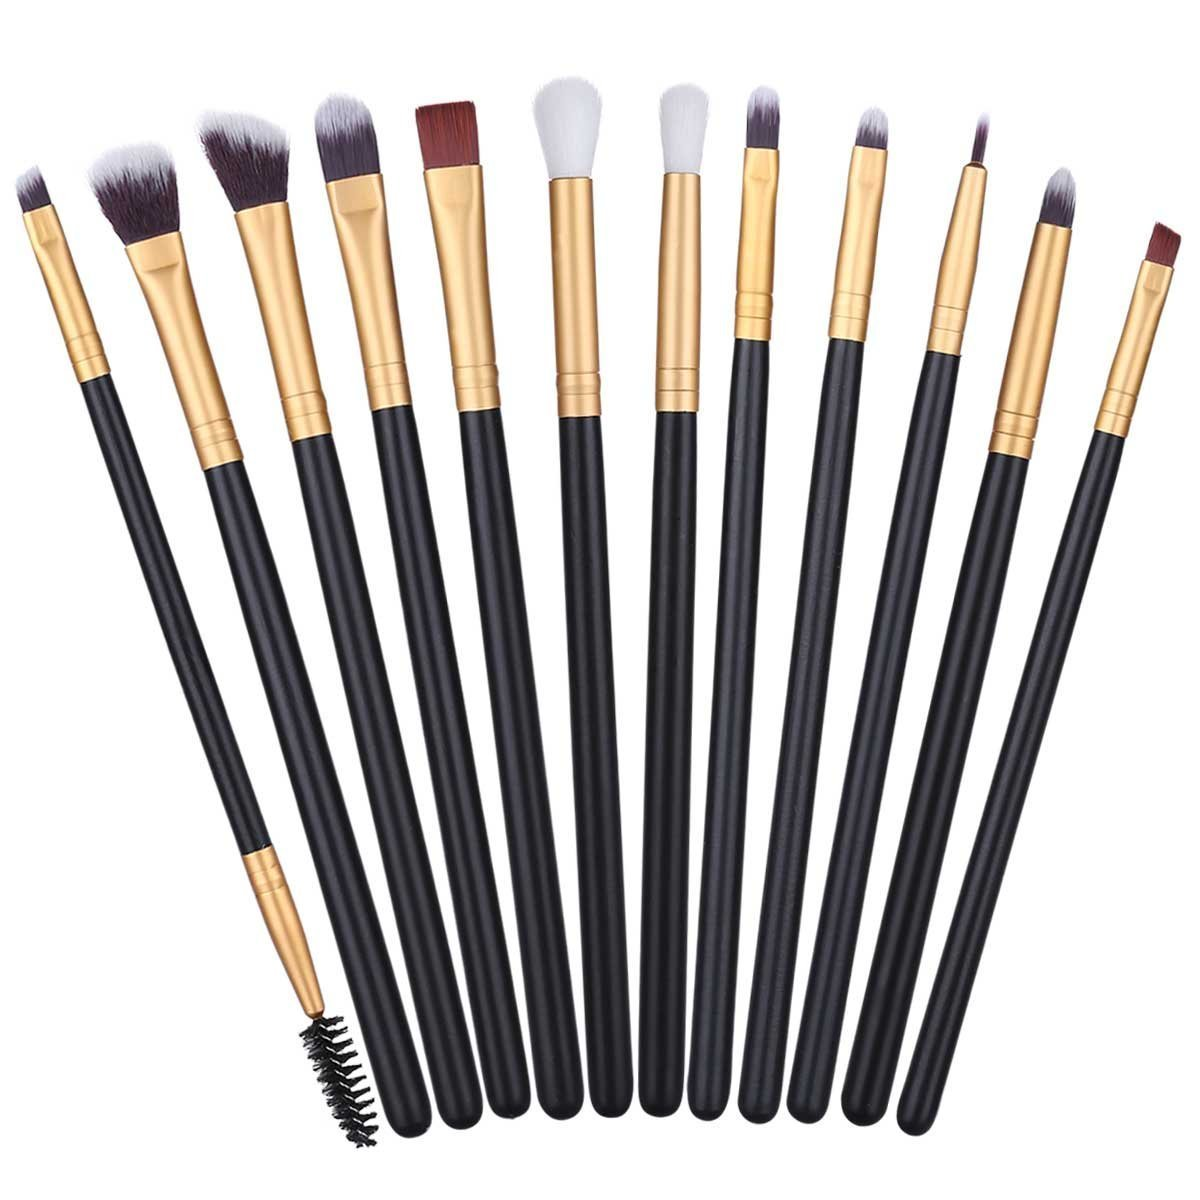 12Pcs Eye Makeup Brushes Professional Eye Brush Set for Shading or Blending of Eyeshadow Crease Powder Eyebrow Eyeliner Highlighter Brush Essential Concealer Cosmetics Brush Tool BTYMS